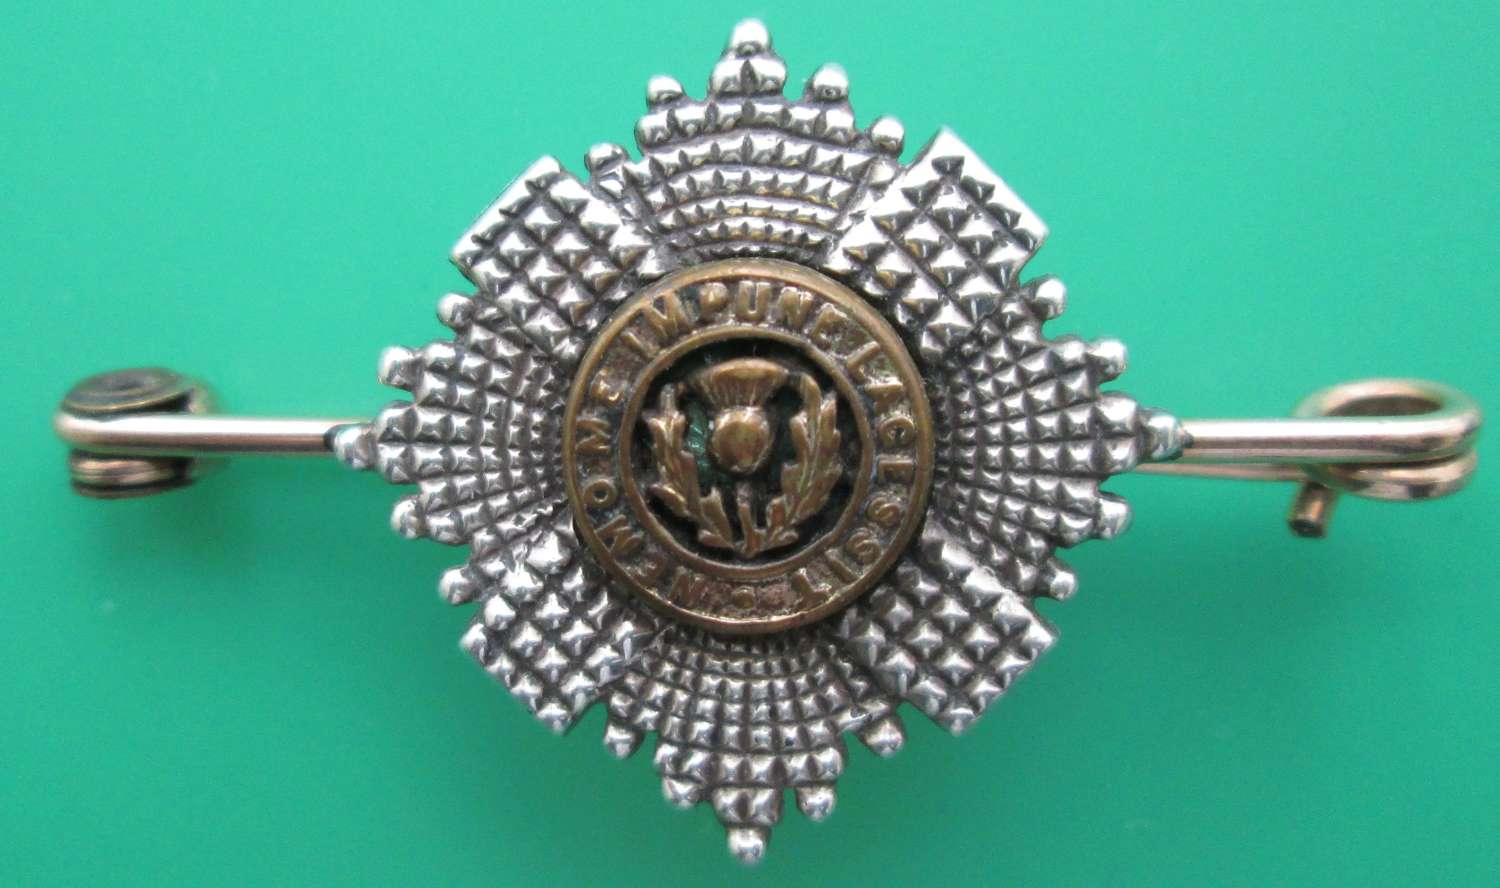 A SCOTS GUARDS SWEETHEART BROOCH